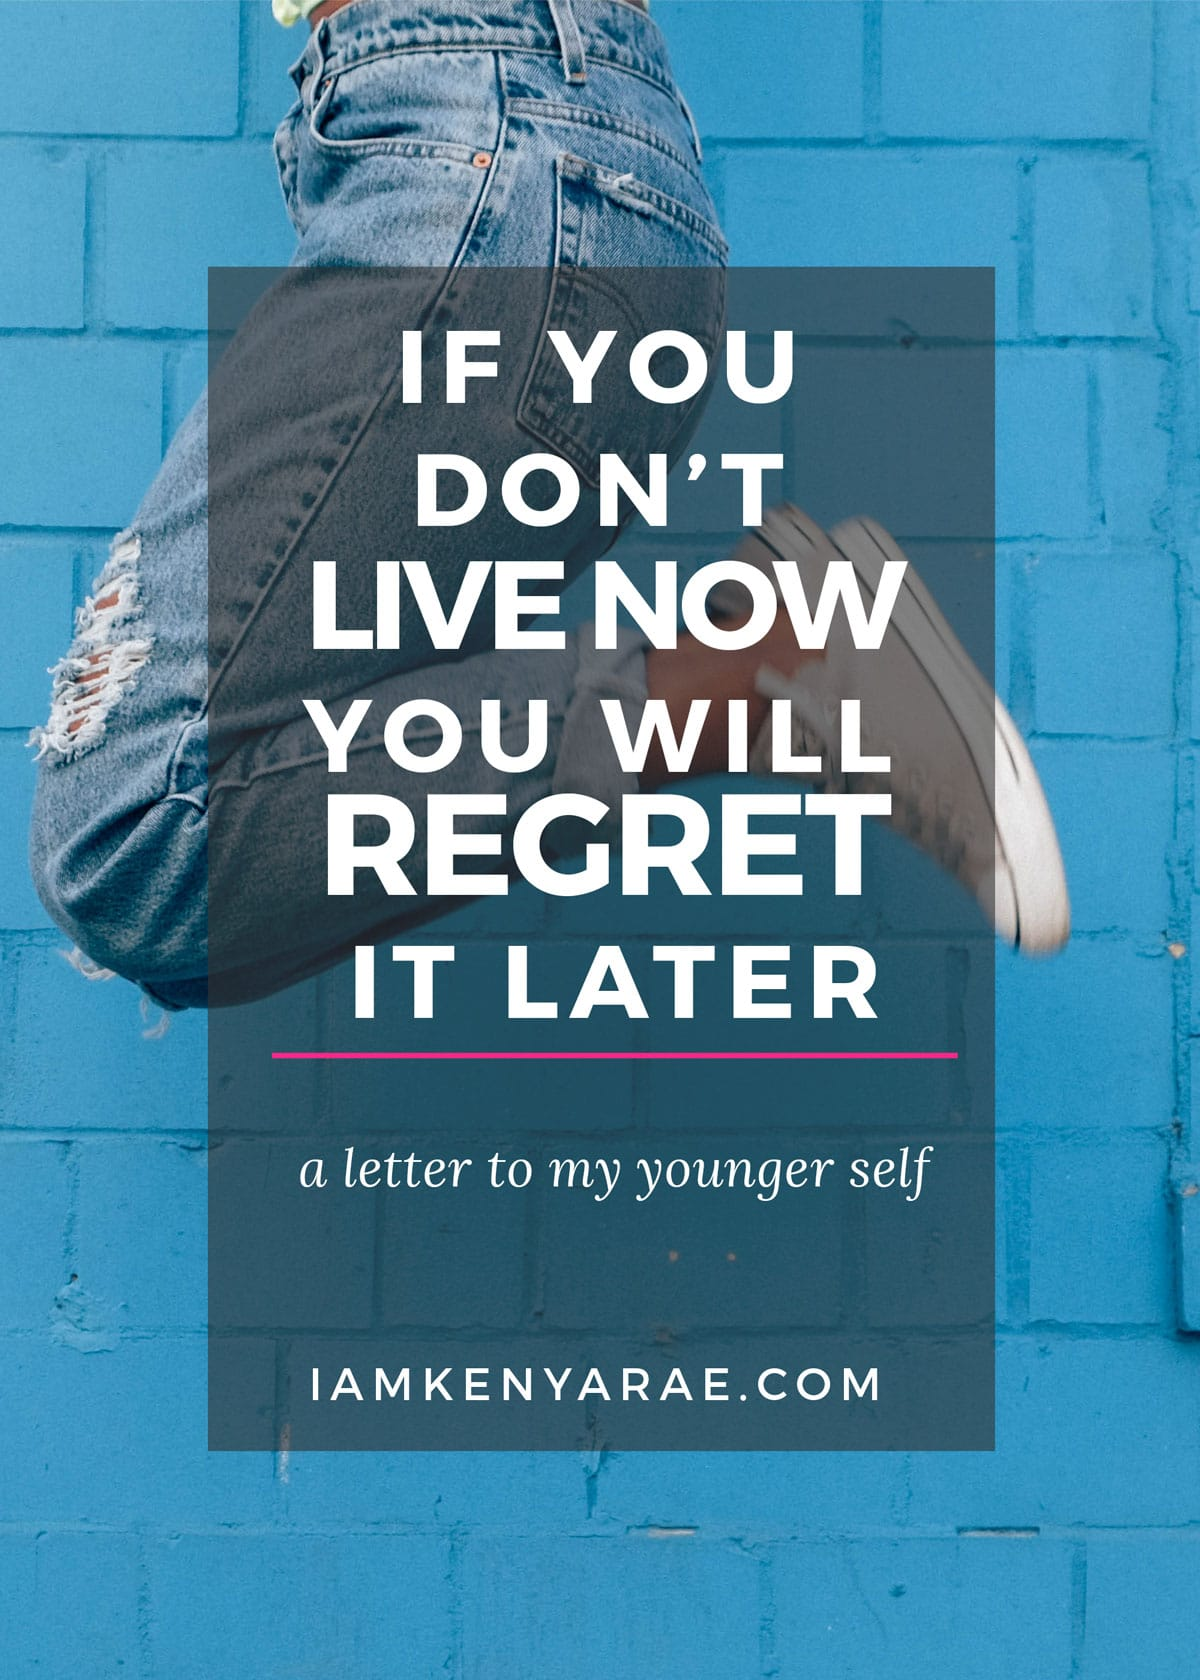 IF YOU DON'T LIVE NOW, YOU WILL REGRET IT LATER